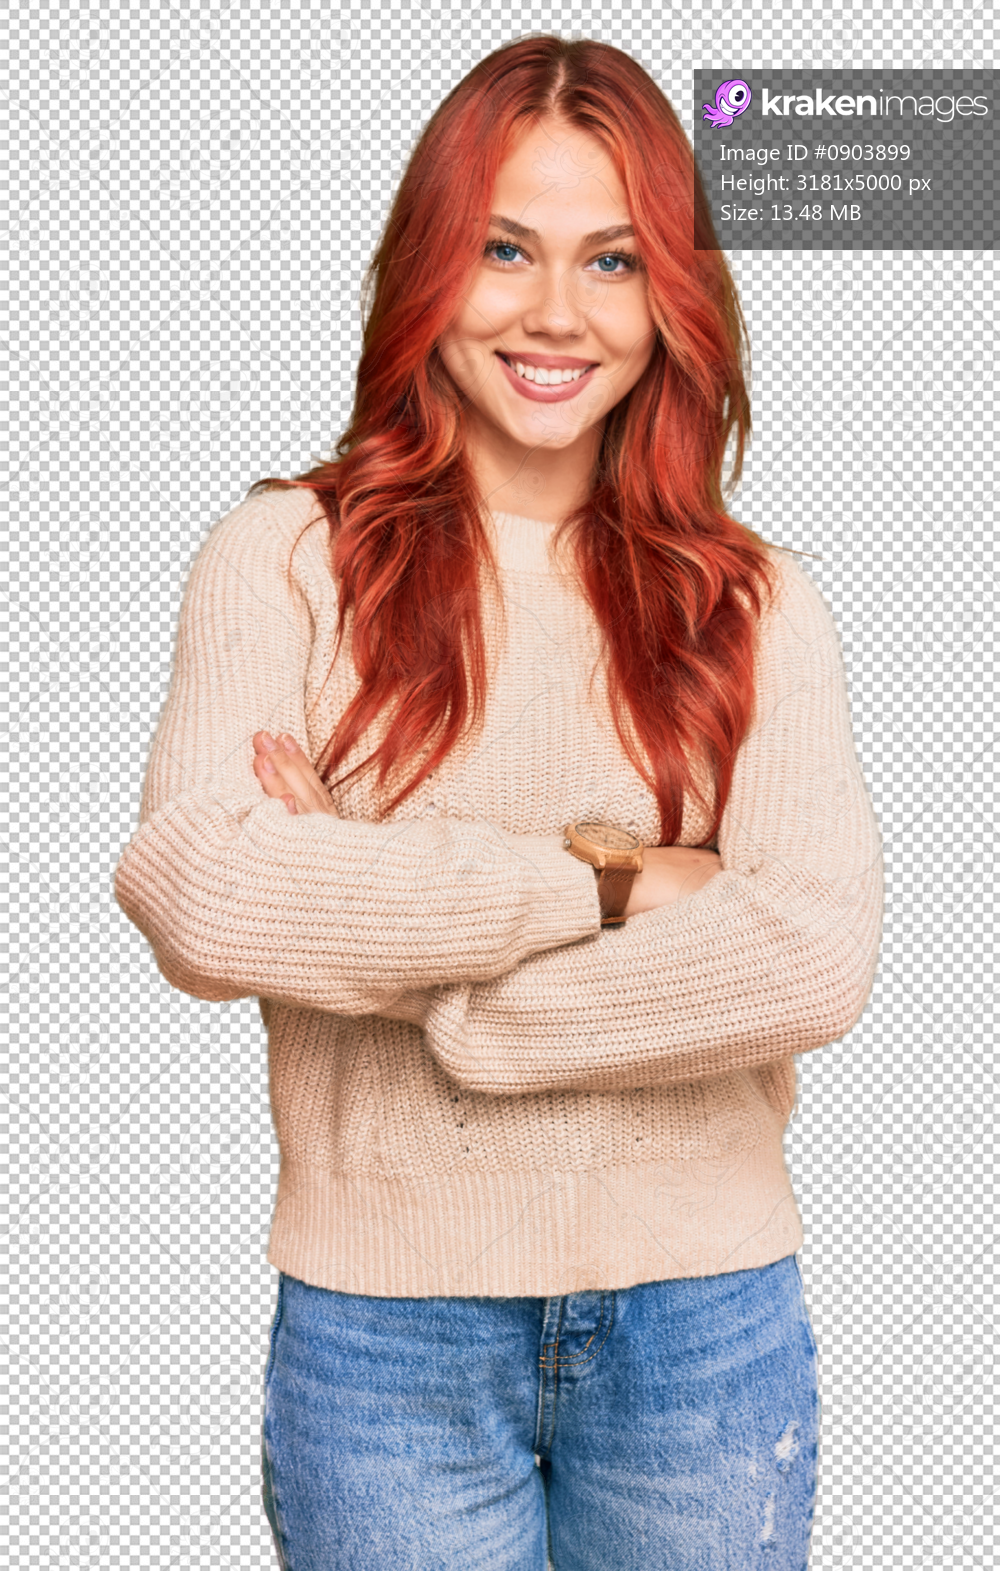 Young redhead woman wearing casual winter sweater happy face smiling with crossed arms looking at the camera. positive person.